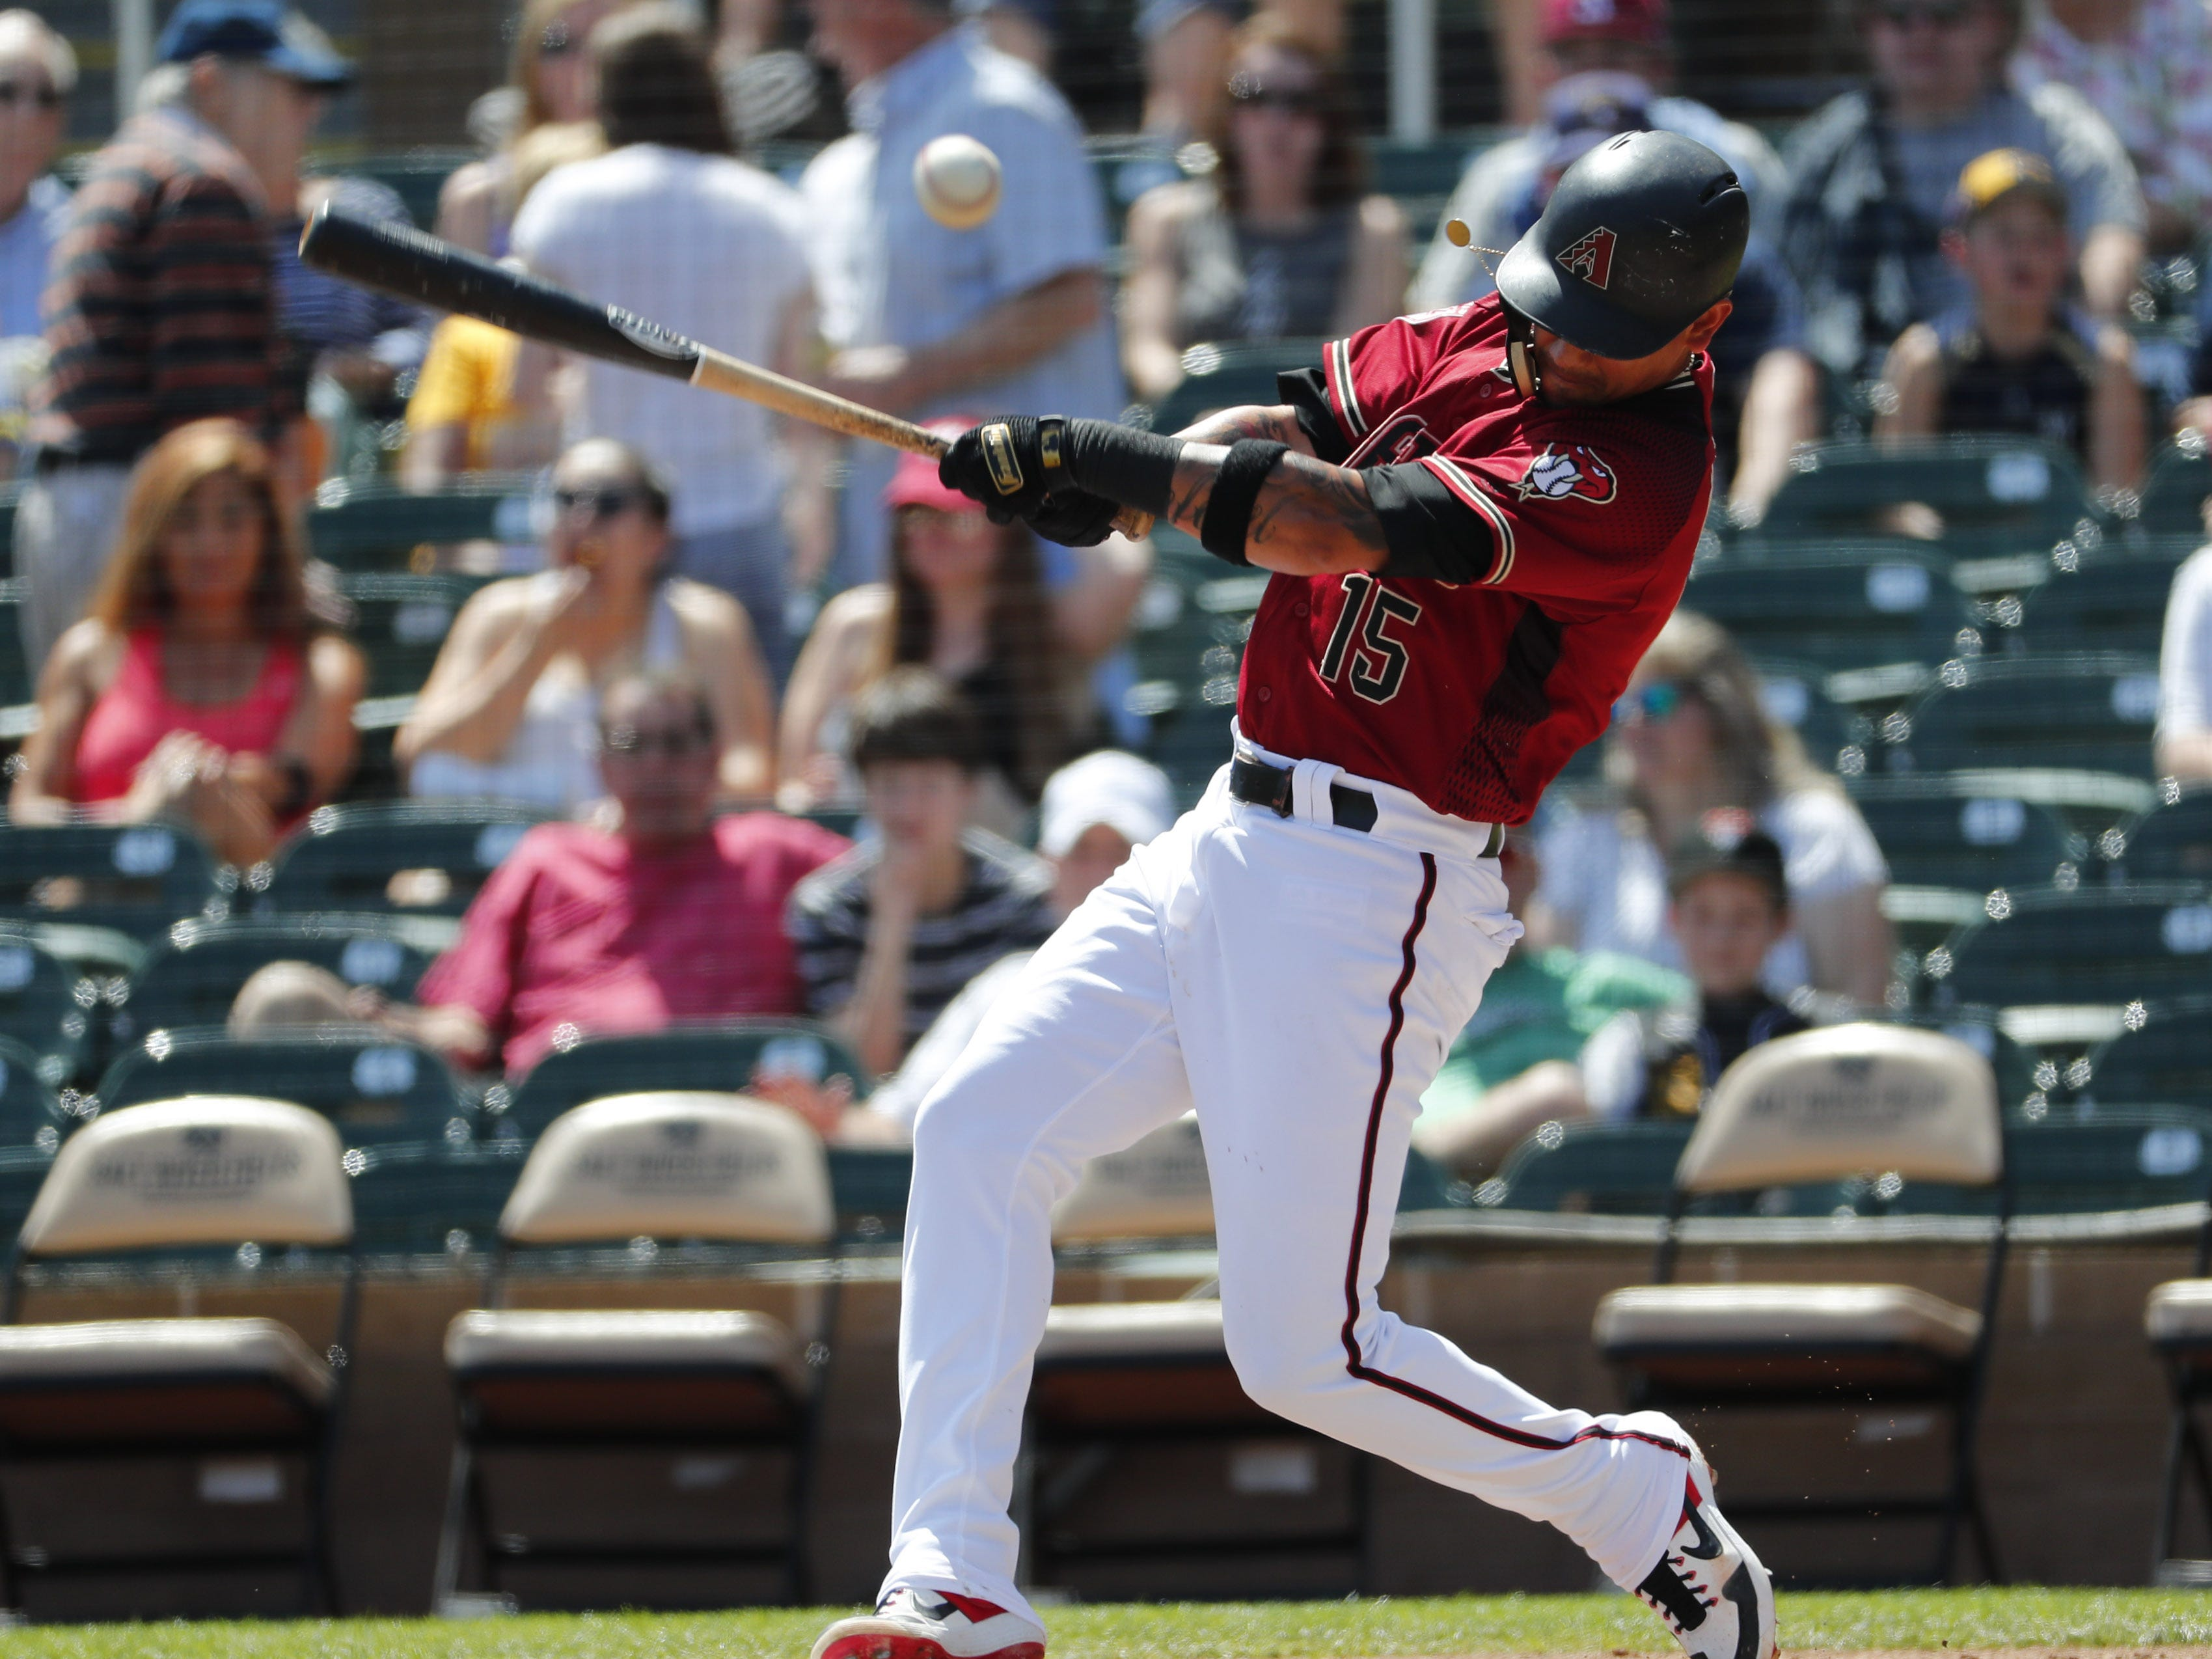 Arizona Diamondbacks second baseman Ildemaro Vargas (15) fouls the ball off during spring training against the Milwaukee Brewers at Salt River Fields at Talking Stick March 24, 2019.